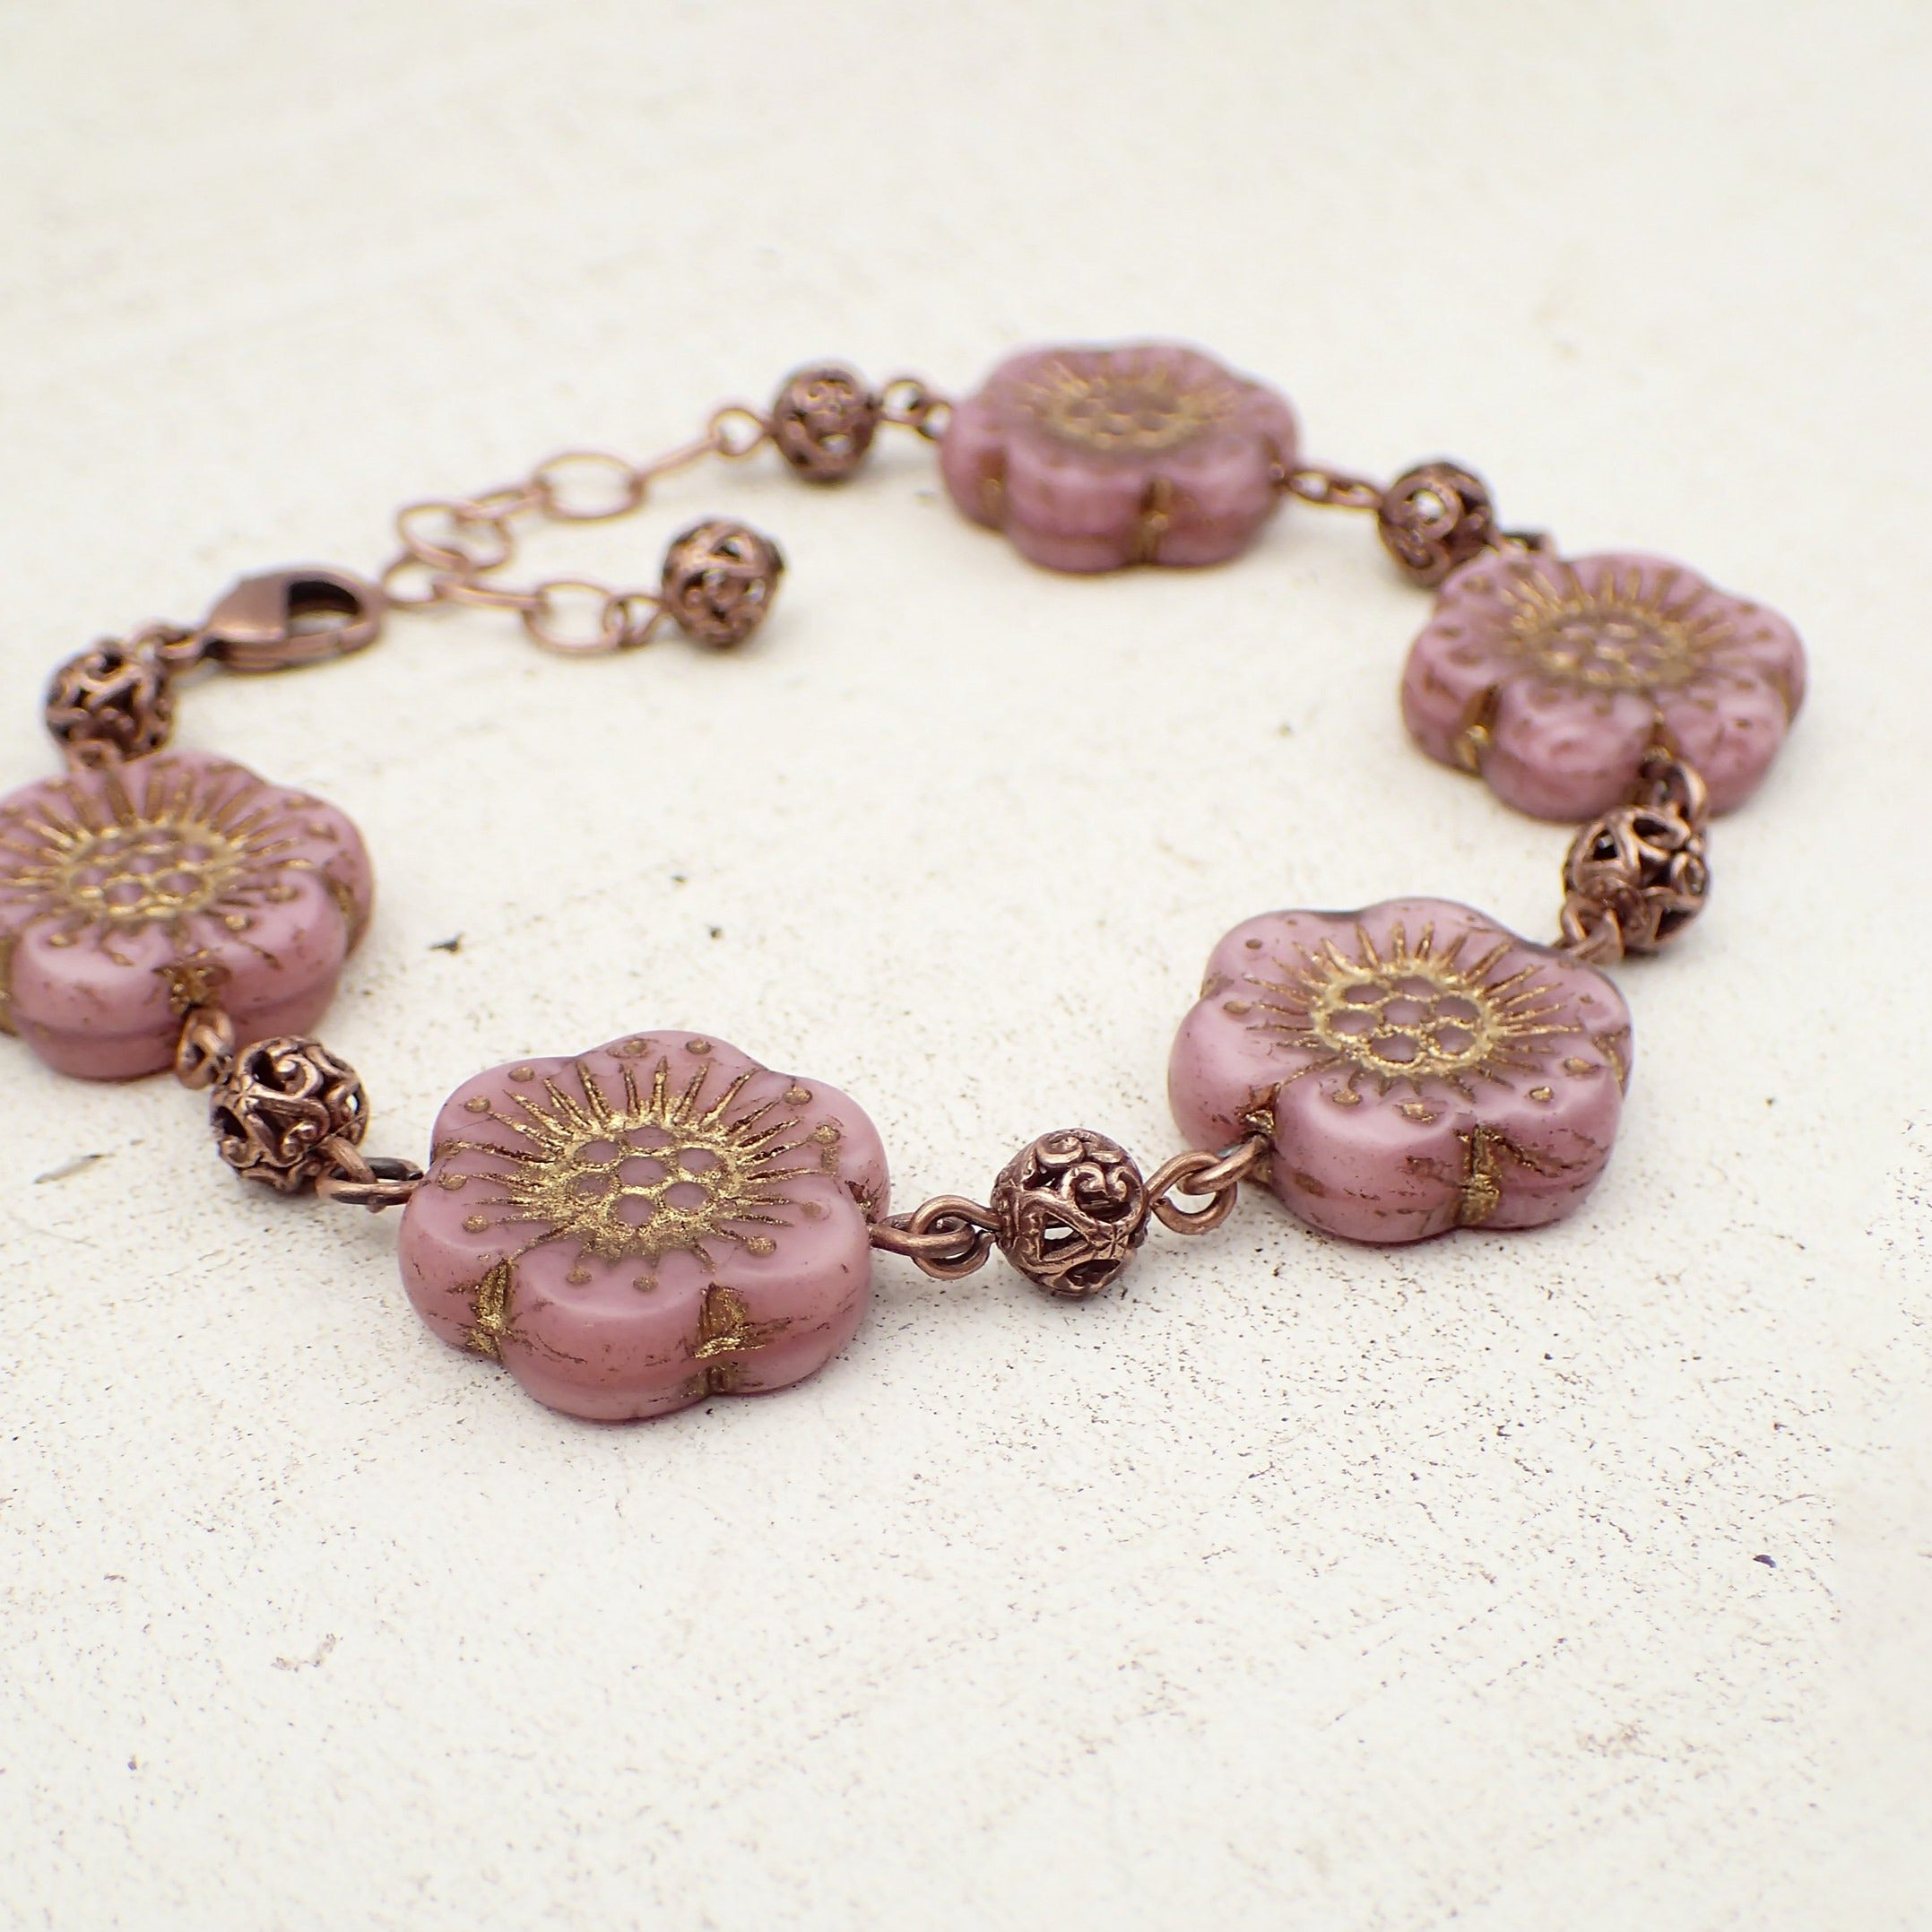 Dusty Pink Flower Bracelet with Copper Filigree Beads